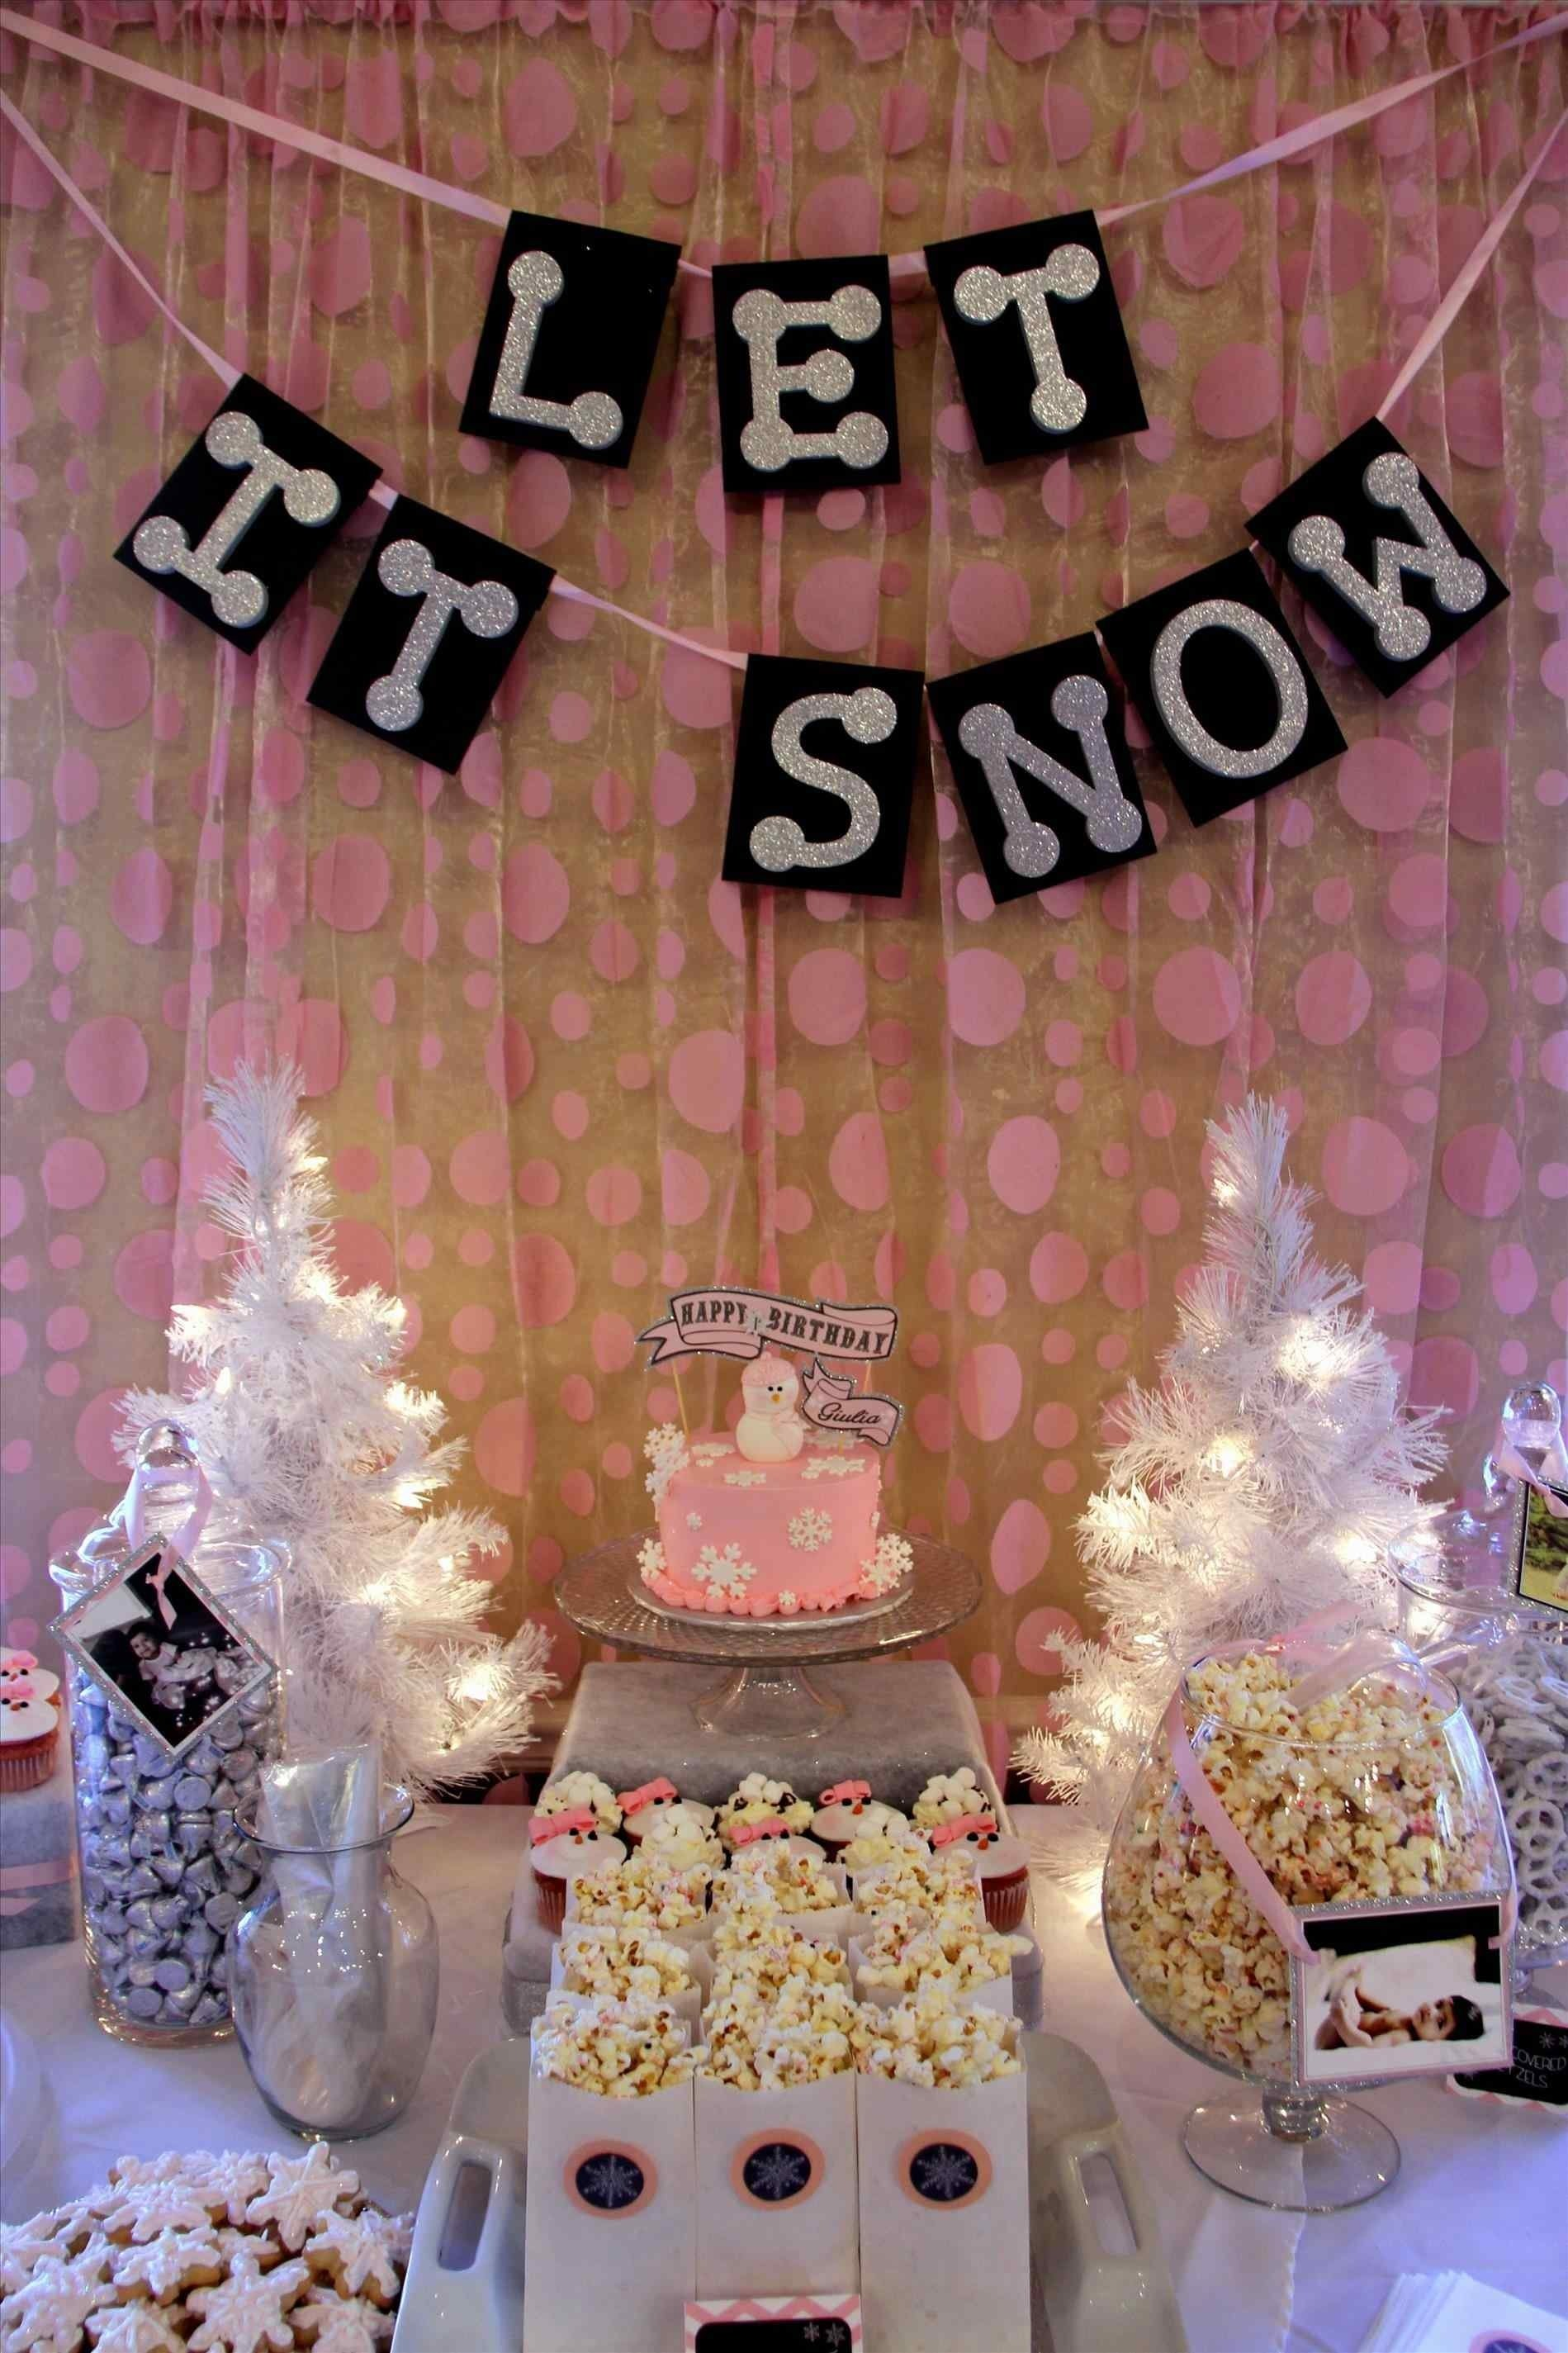 10 Gorgeous Winter Birthday Party Ideas For Adults ice age on pinterest dino eggs unique winter party ideas for adults 2021